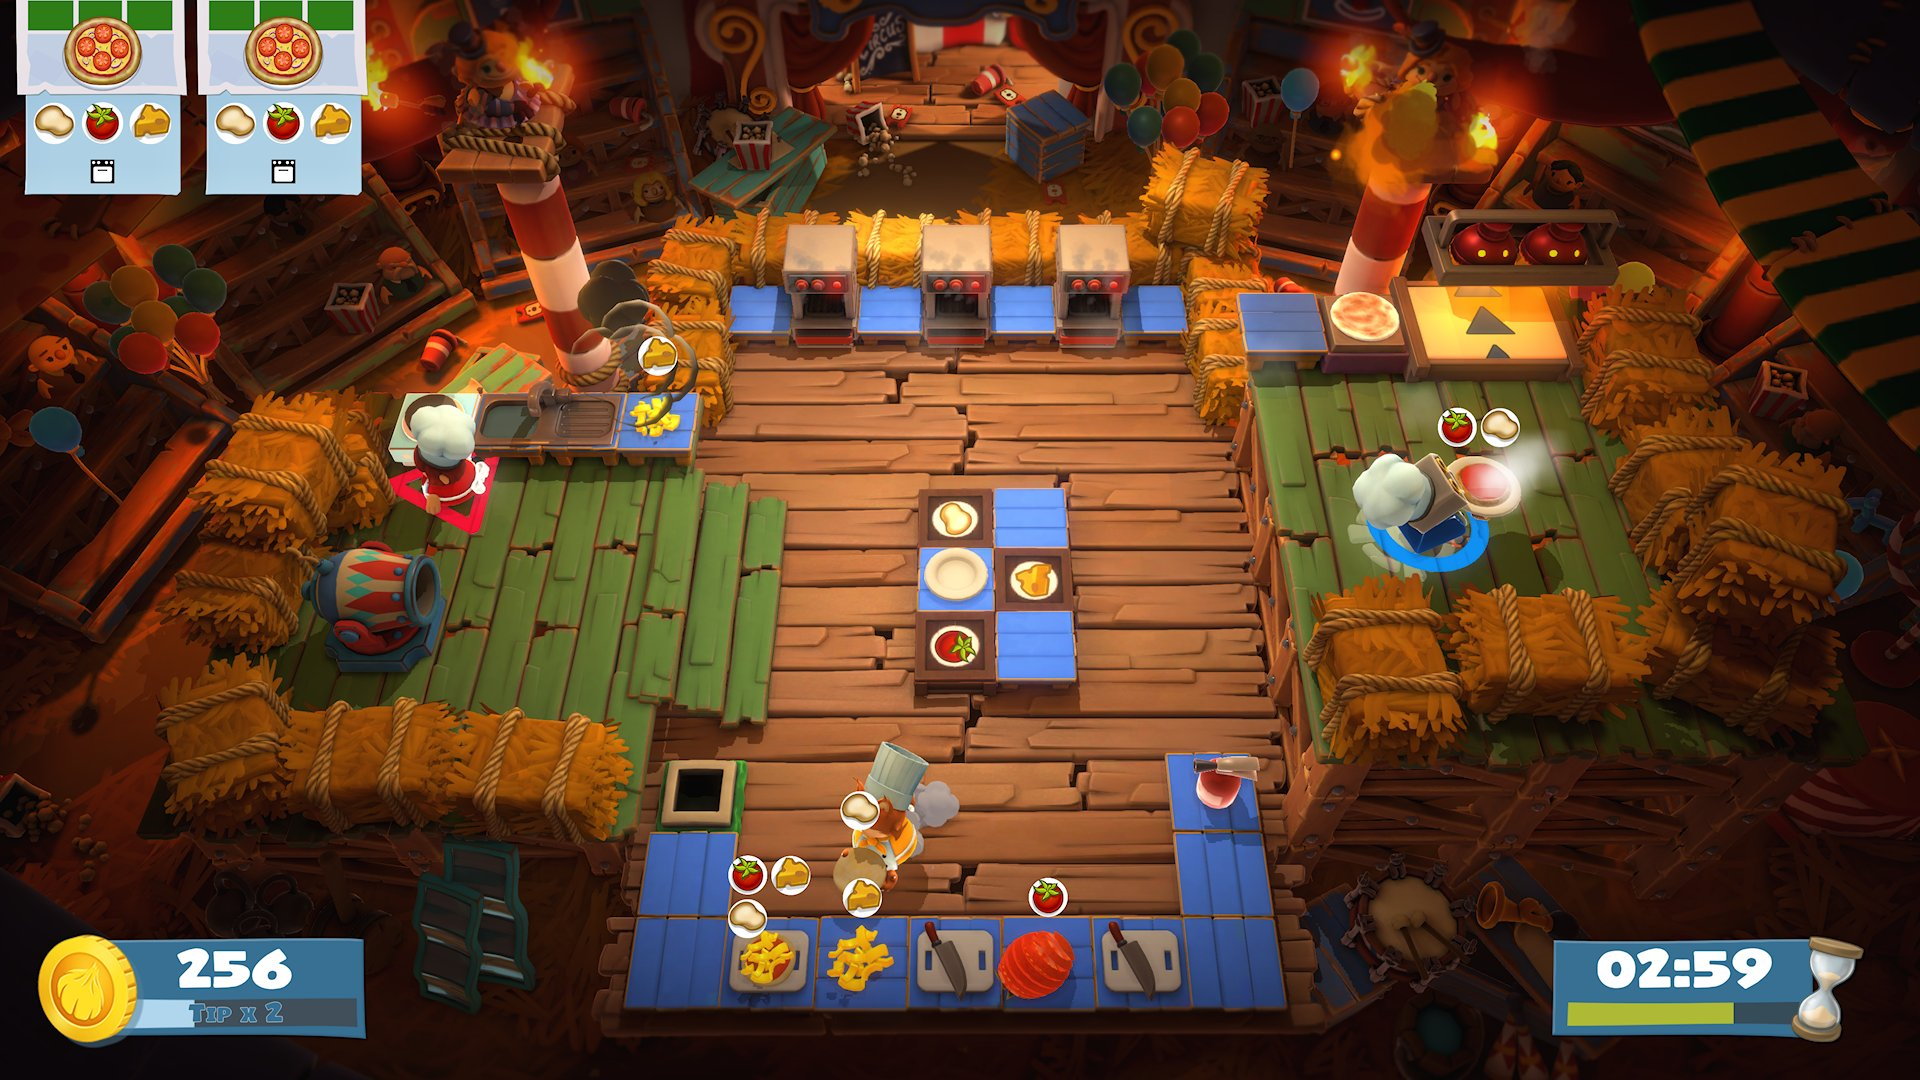 A barn kitchen from Overcooked! with hay bales piled high, and a cannon for extra speedy deliveries.